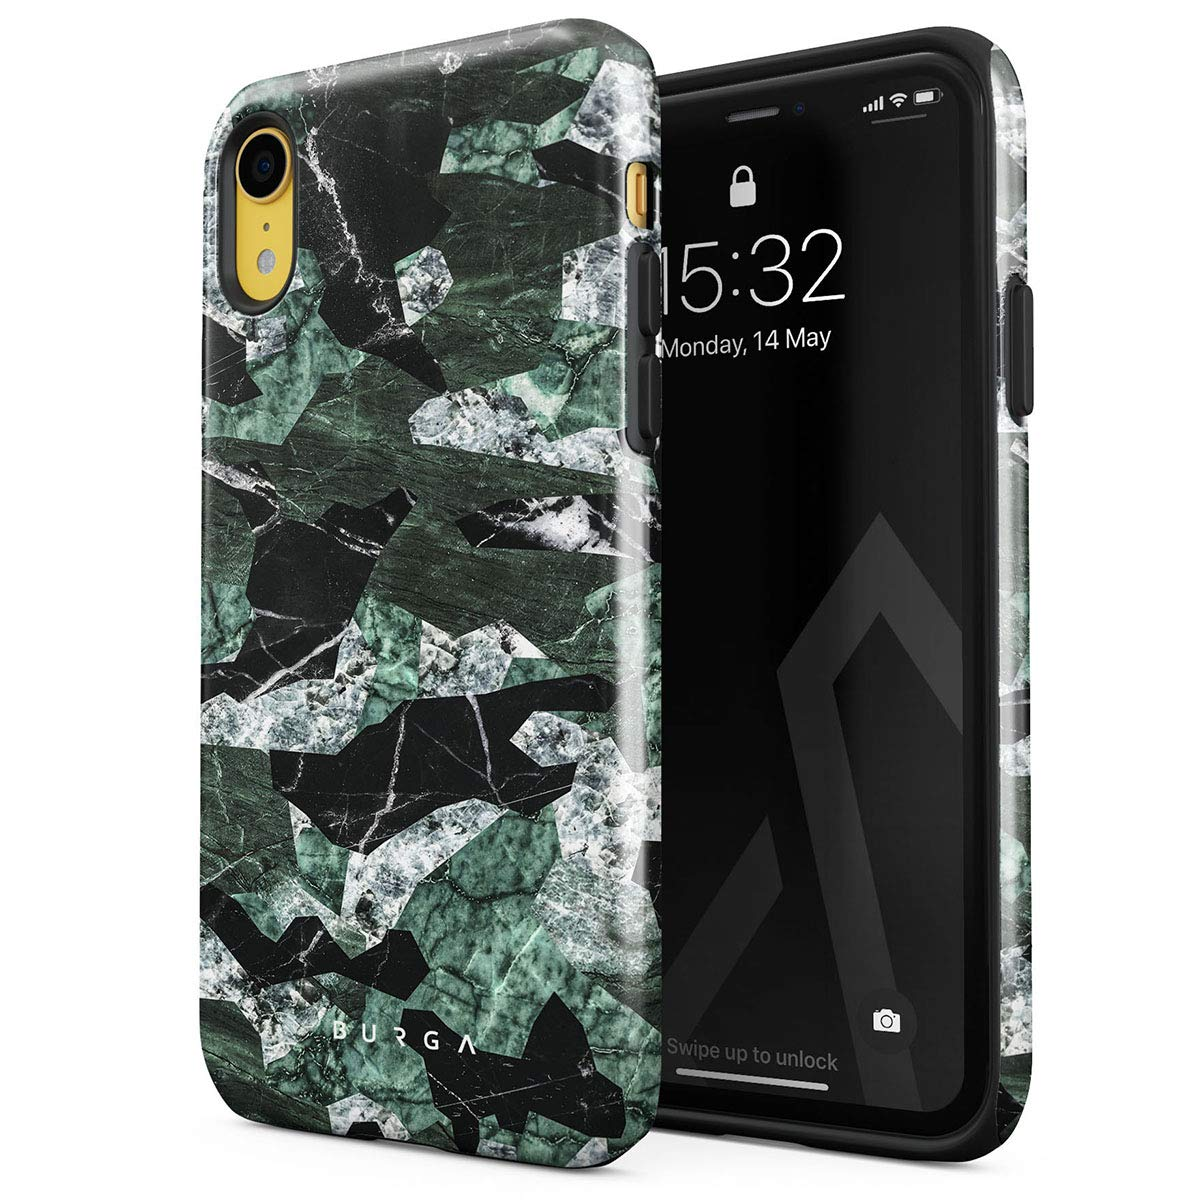 BURGA Phone Case Compatible with iPhone XR - Jade Green Military Forest Marble Camo Camouflage Cute Case for Girls Heavy Duty Shockproof Dual Layer Hard Shell + Silicone Protective Cover